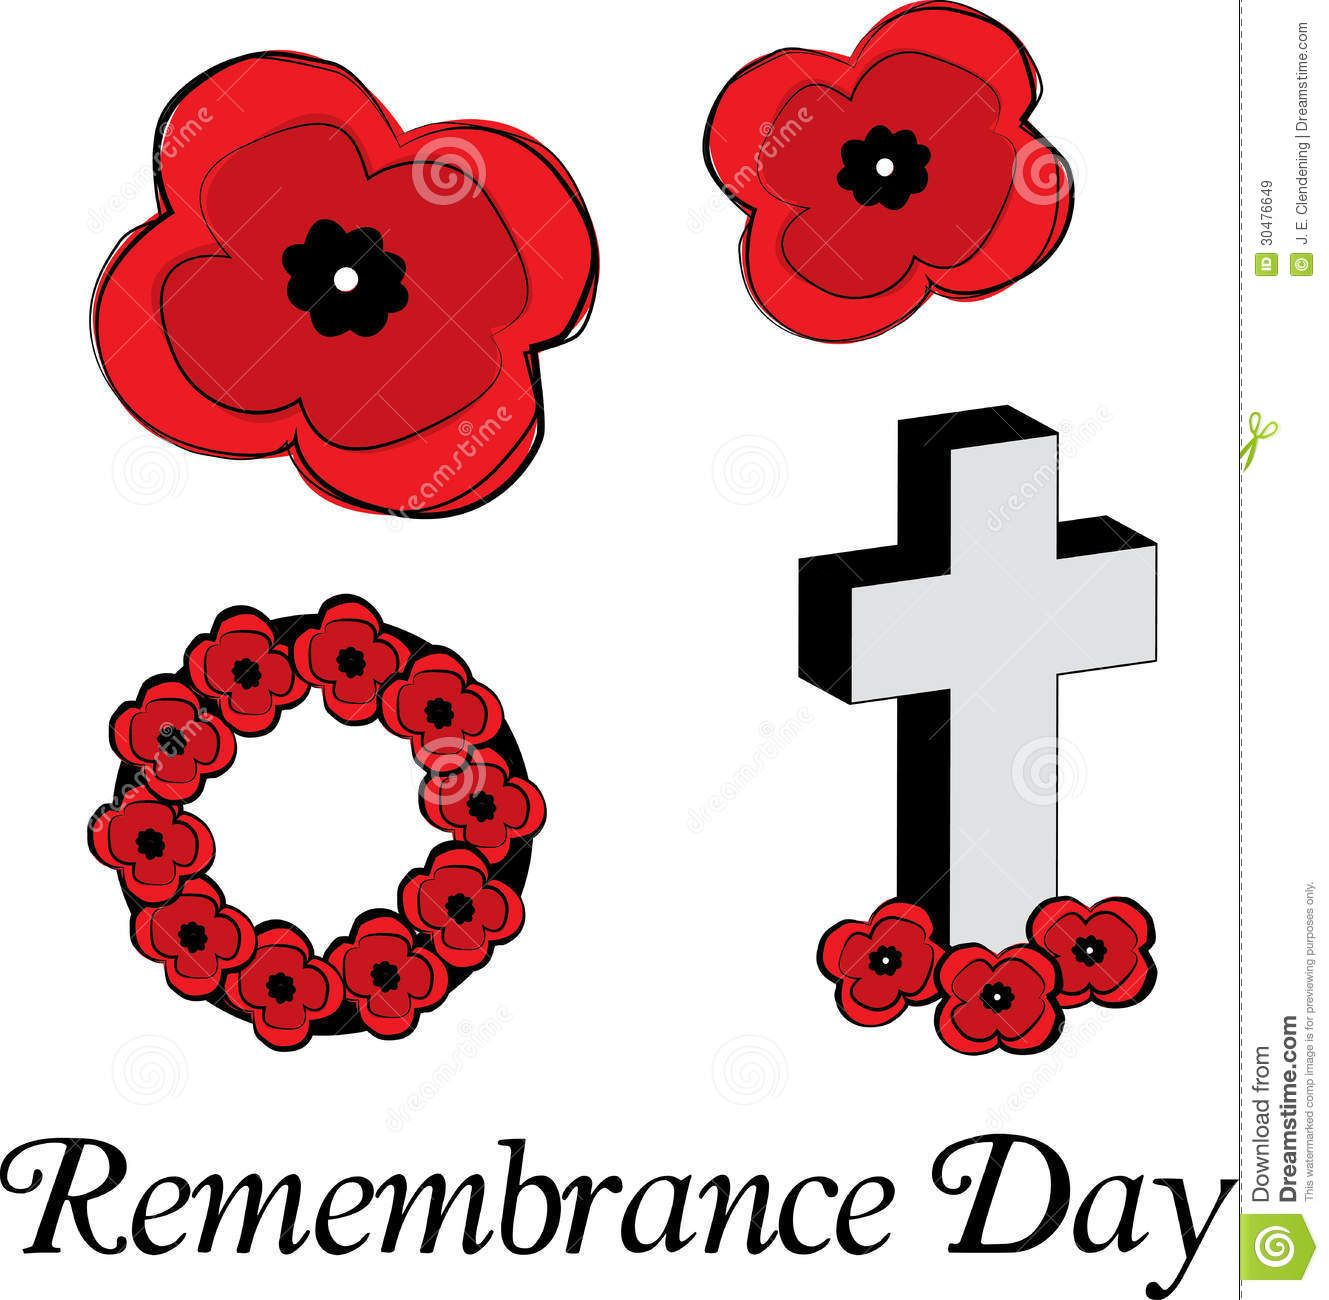 Remembrance Day Poppy Flowers Clipart.